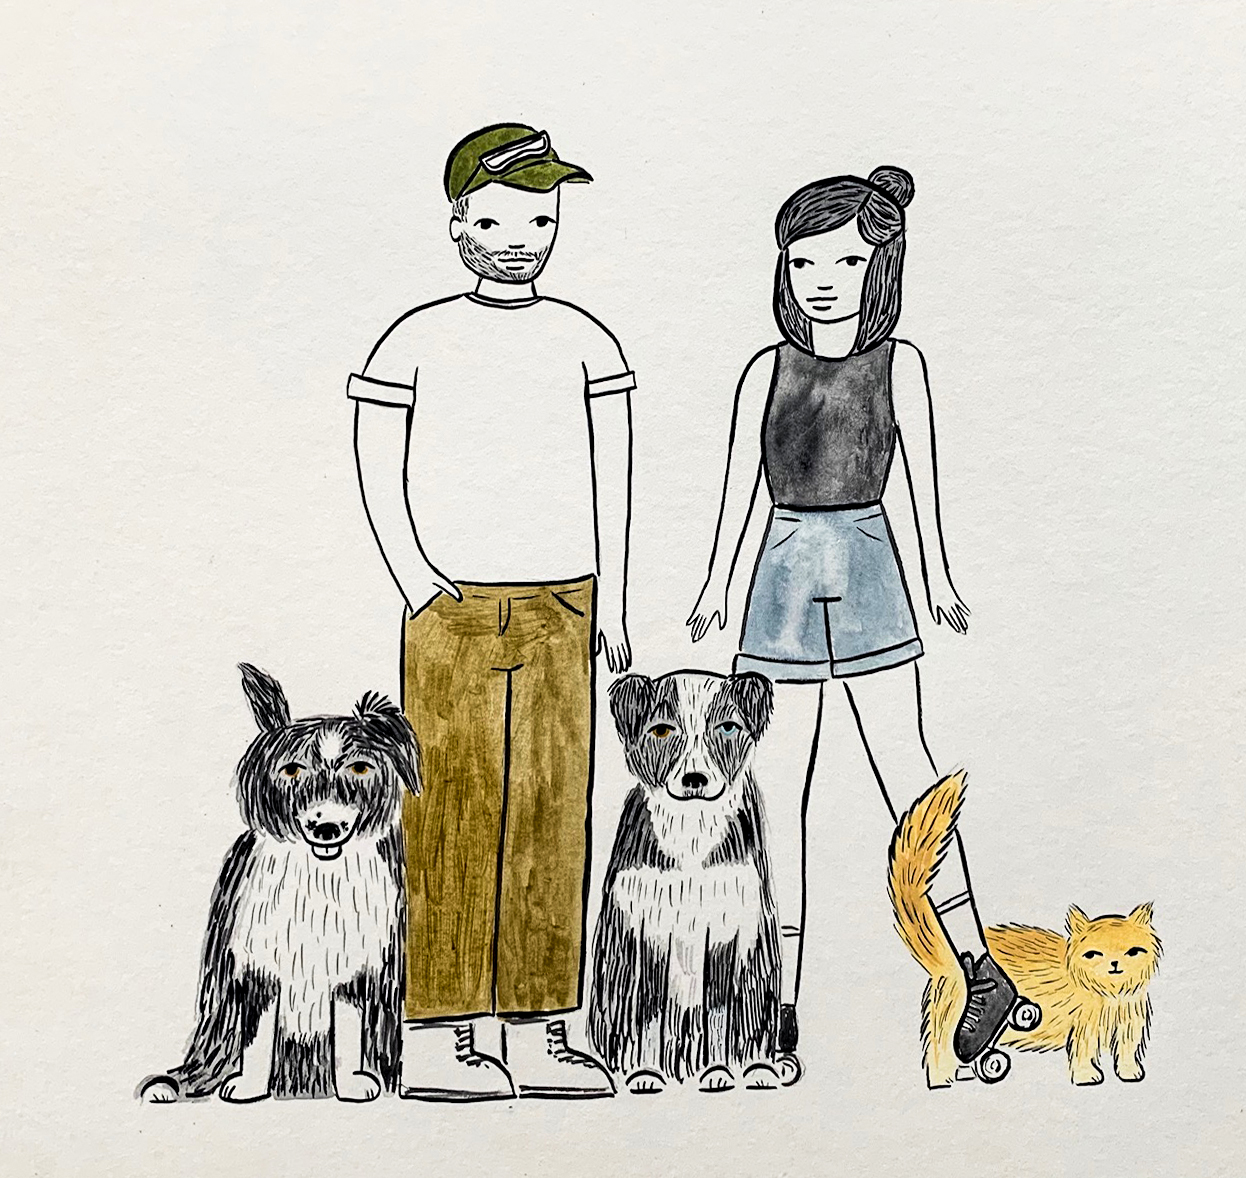 watercolor family portrait by em randall